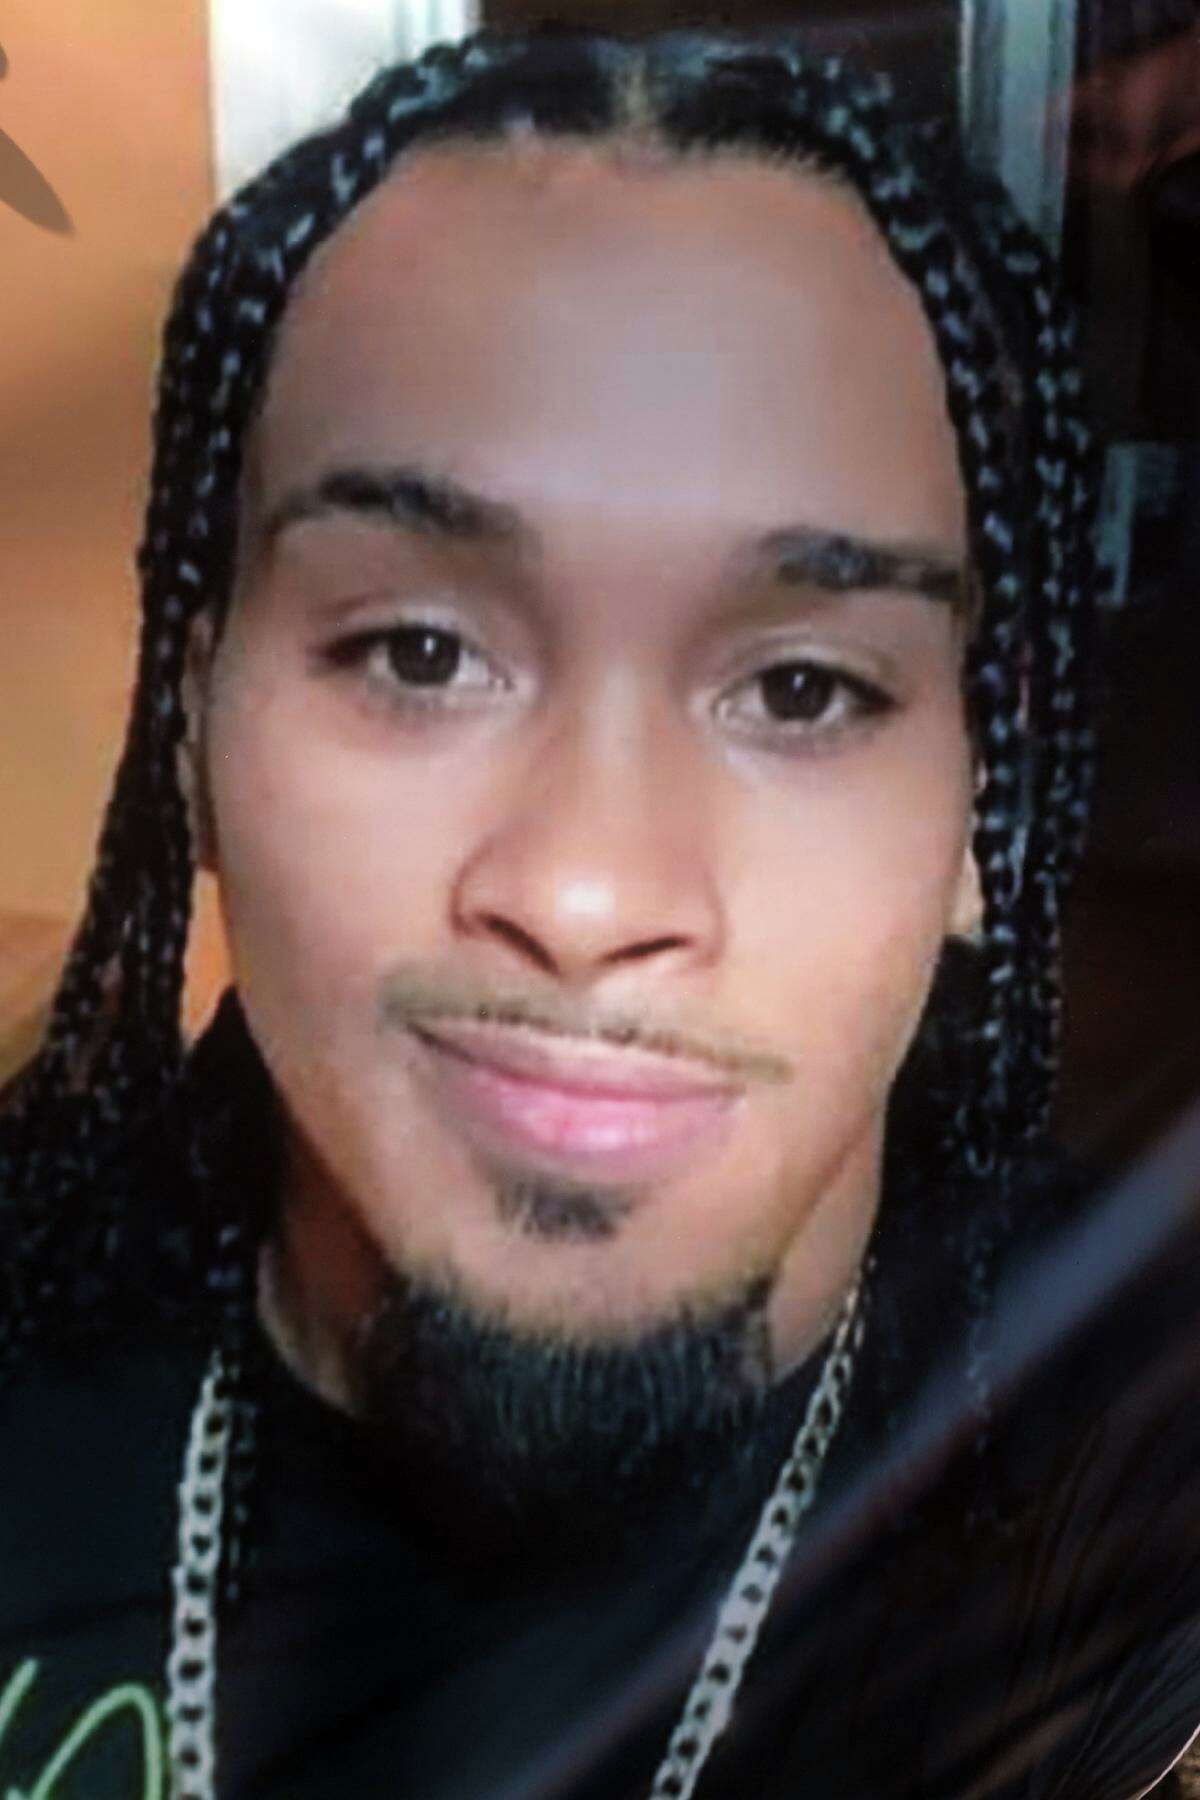 Raymond Sierra, 27, was shot and killed in front of his Bridgeport, Conn. home on Sept. 24, 2020.